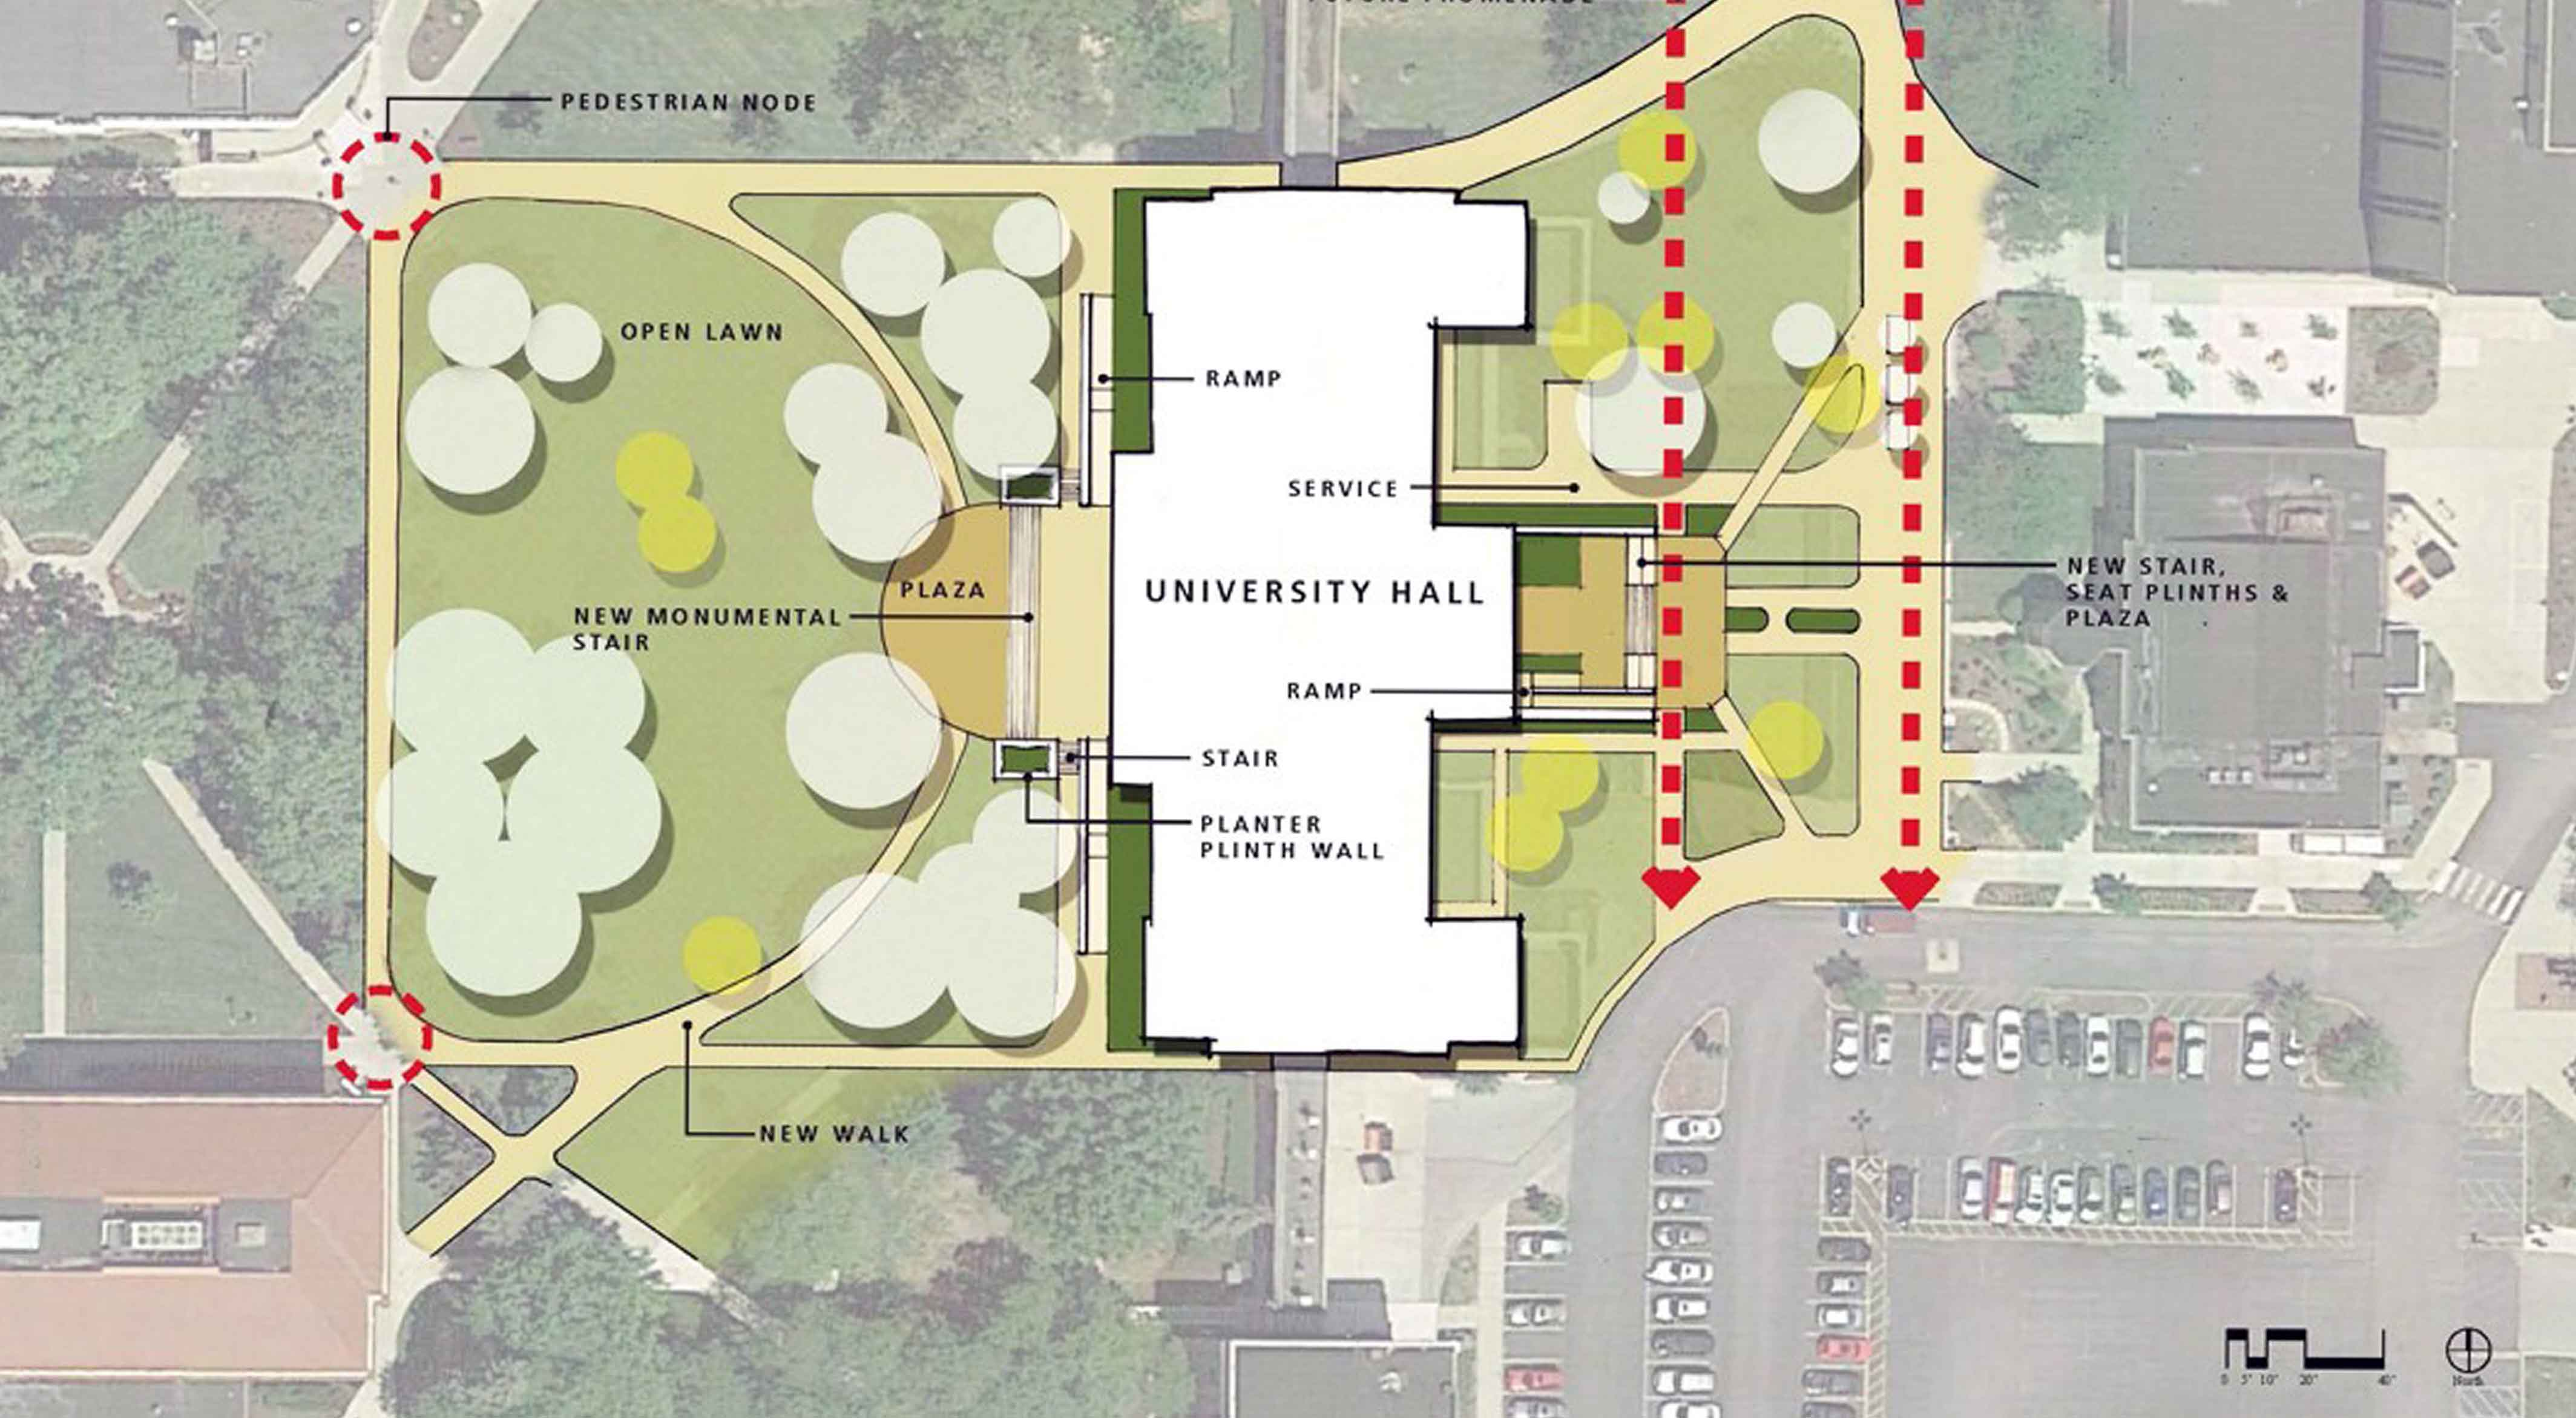 A diagram maps out a university's current facilities